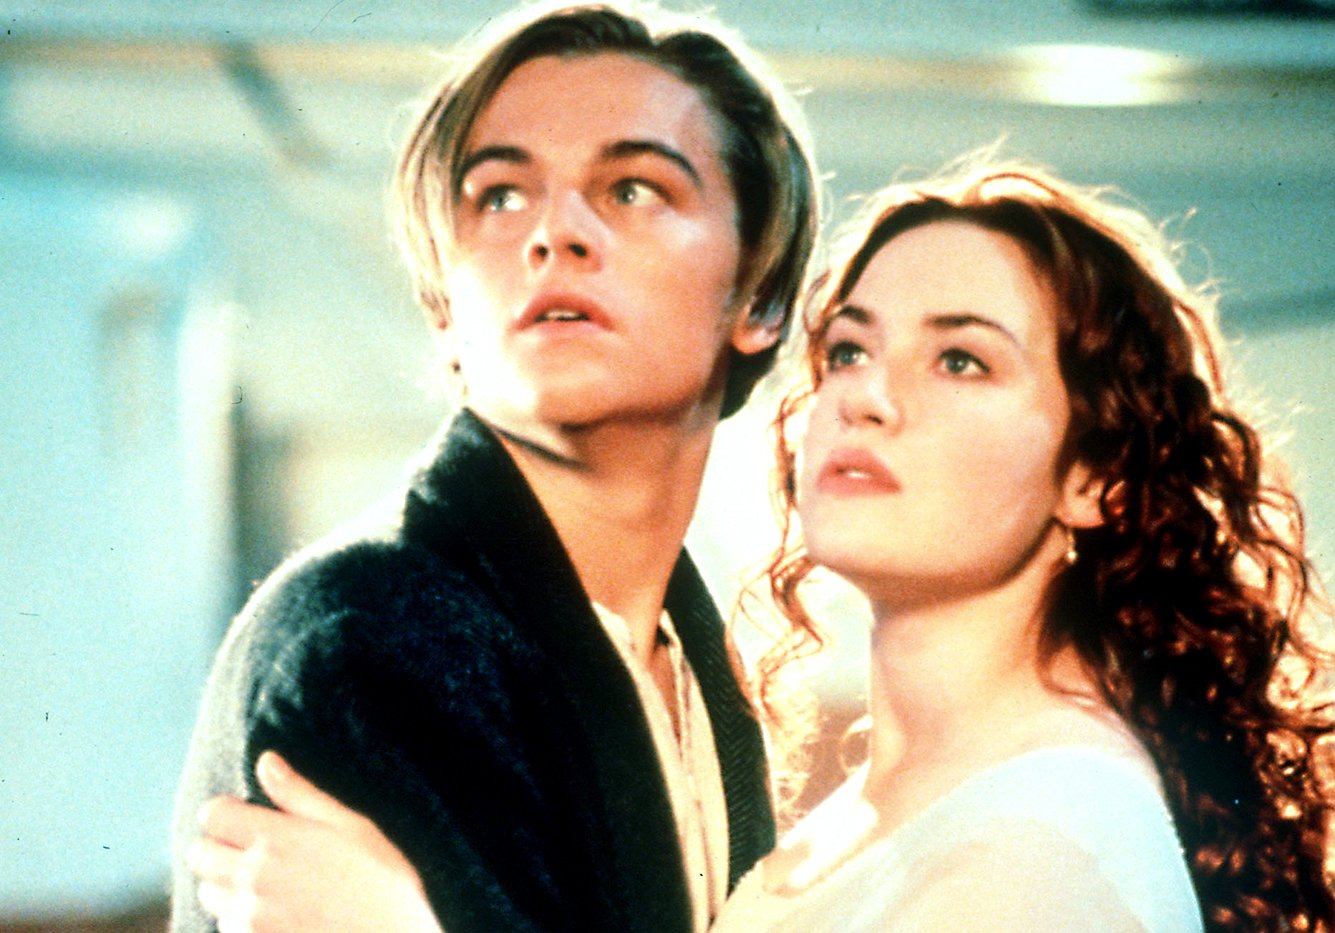 FILM: Titanic (1997) Leonardo Di Caprio pictured as Jack Dawson, with Kate Winslet as Rose DeWitt Bukater, in a scene from the film directed by James Cameron.